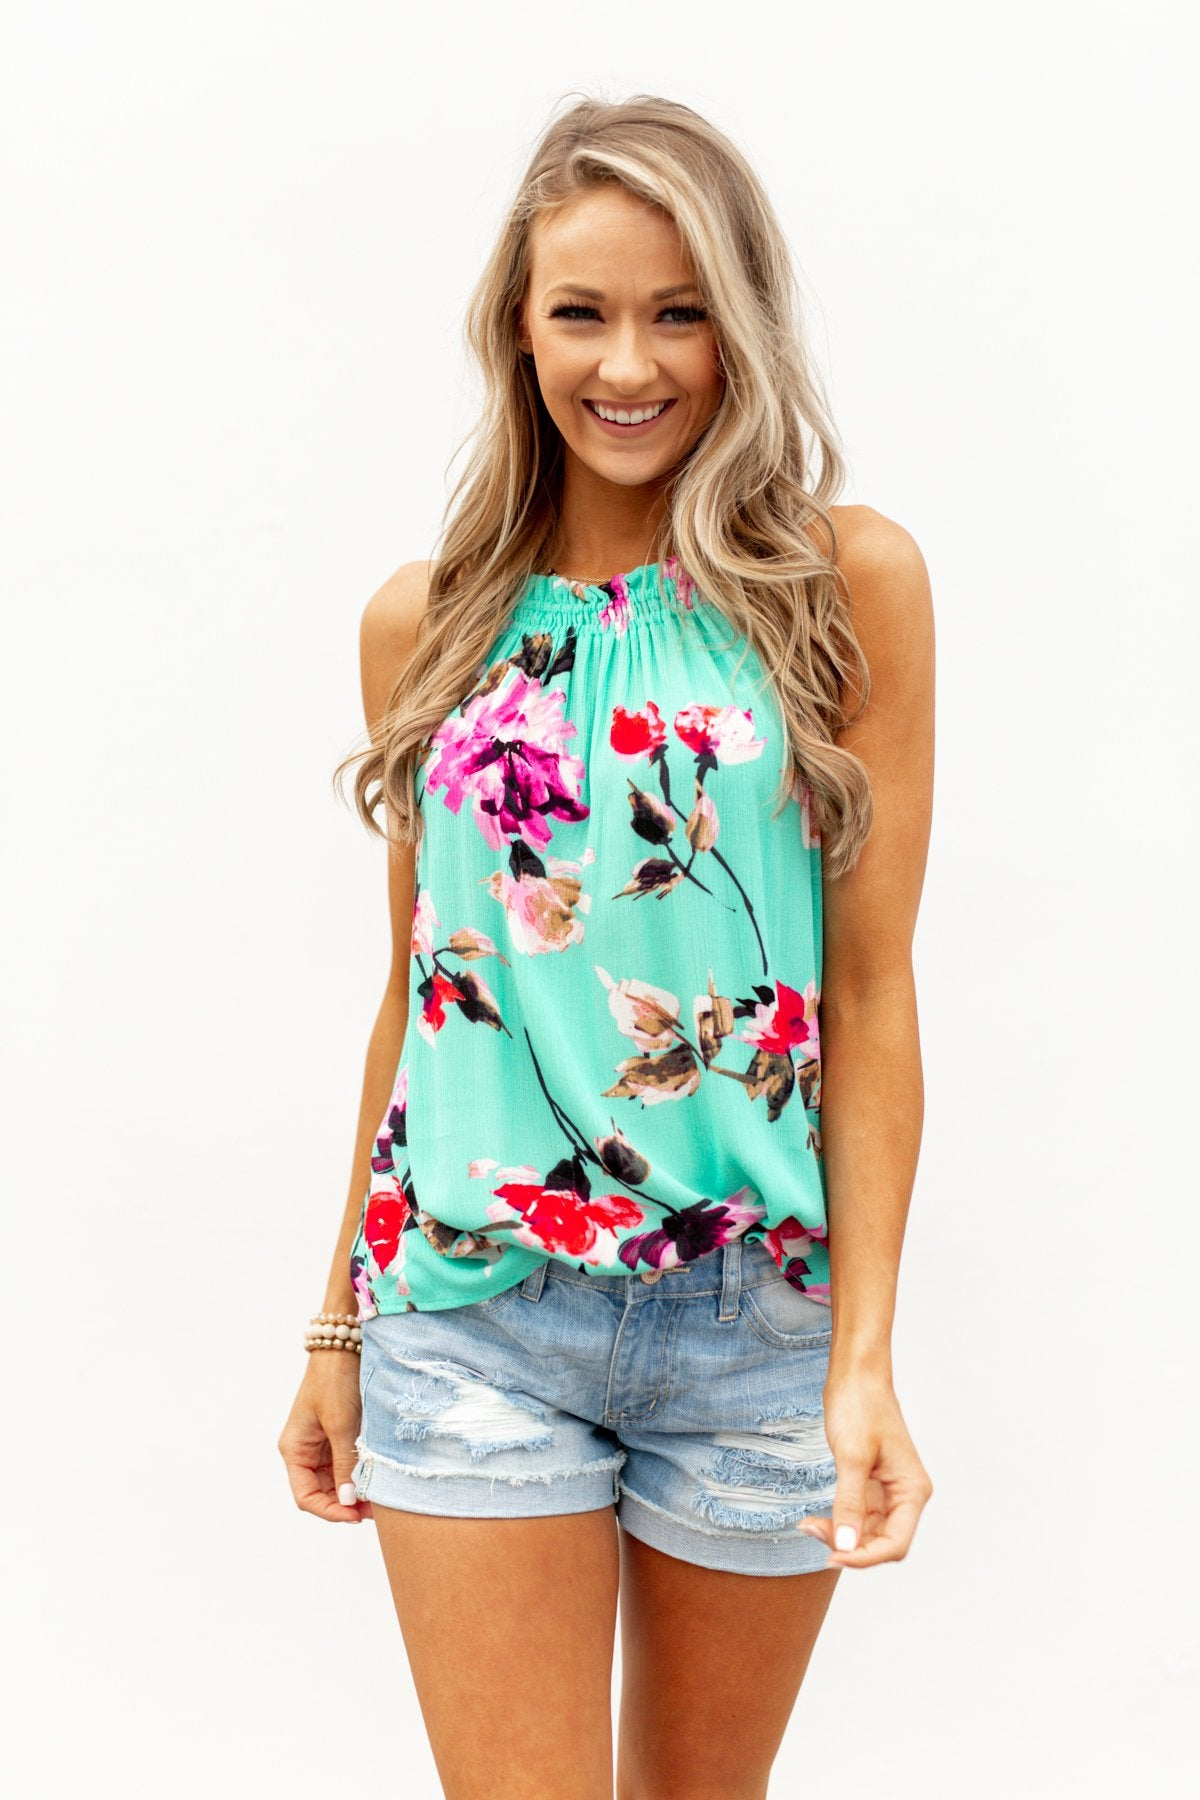 What A Life Floral Tank Top- Mint Blue